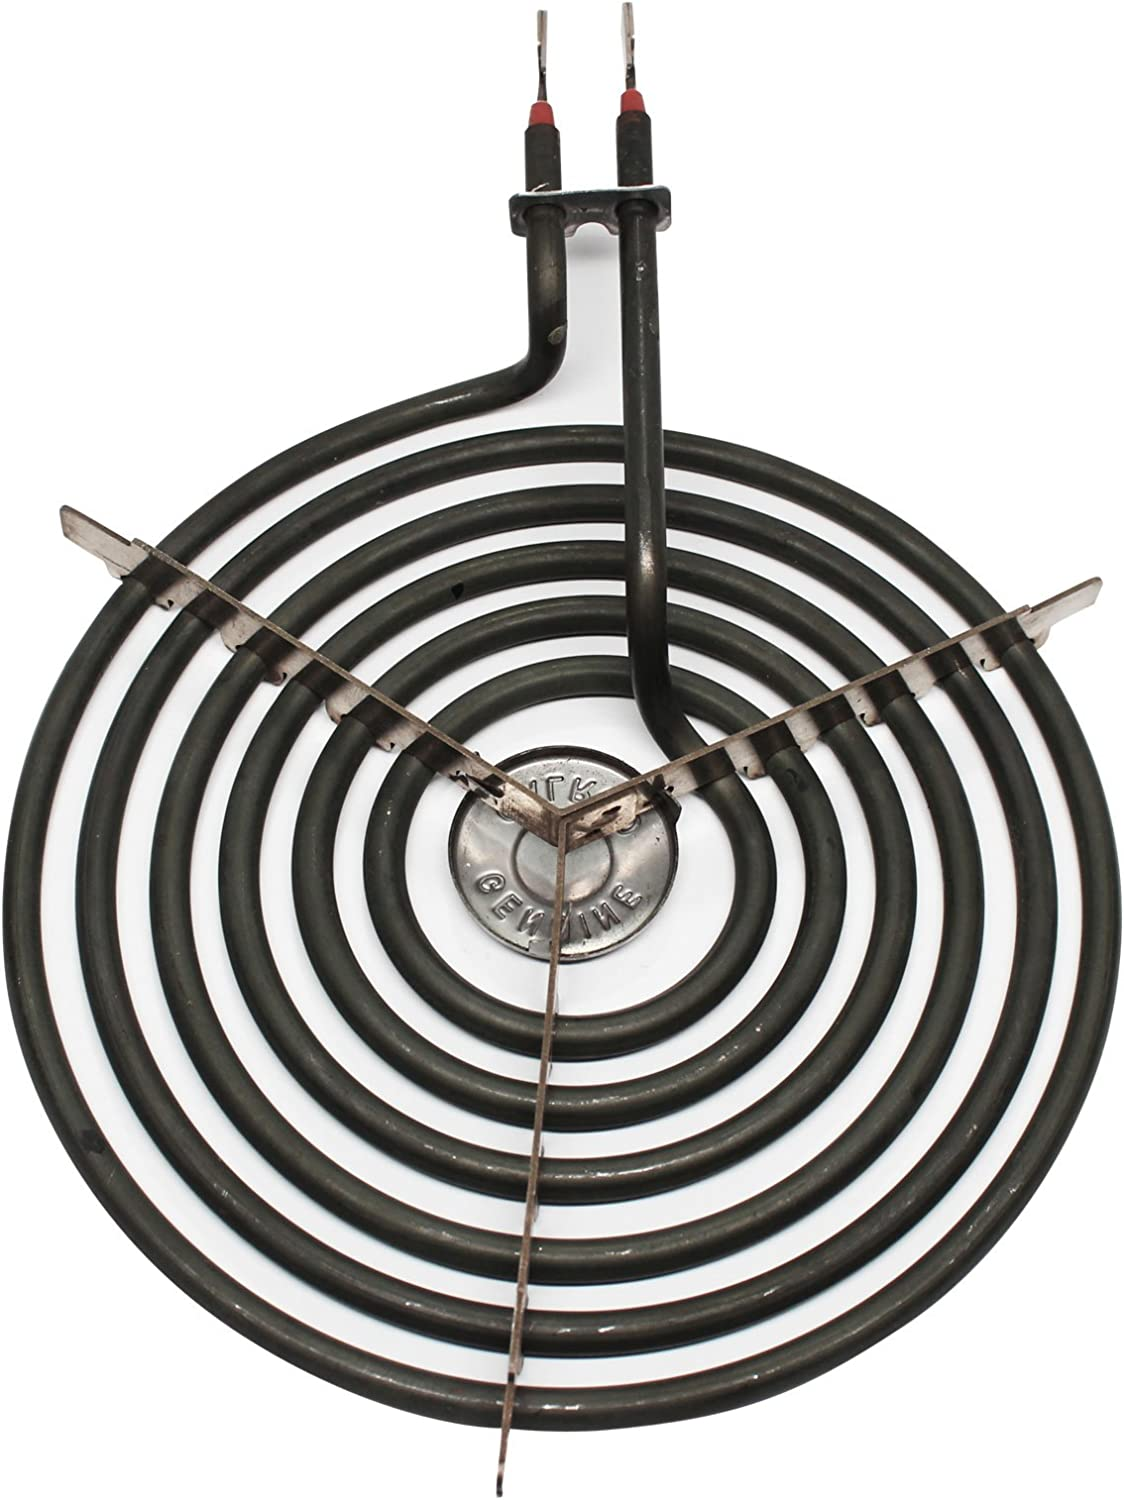 Compatible with General Electric WB30M2 Heating Element for Range Stove /& Cooktop Replacement for General Electric JSP34WD1WW 8 inch 6 Turns Surface Burner Element